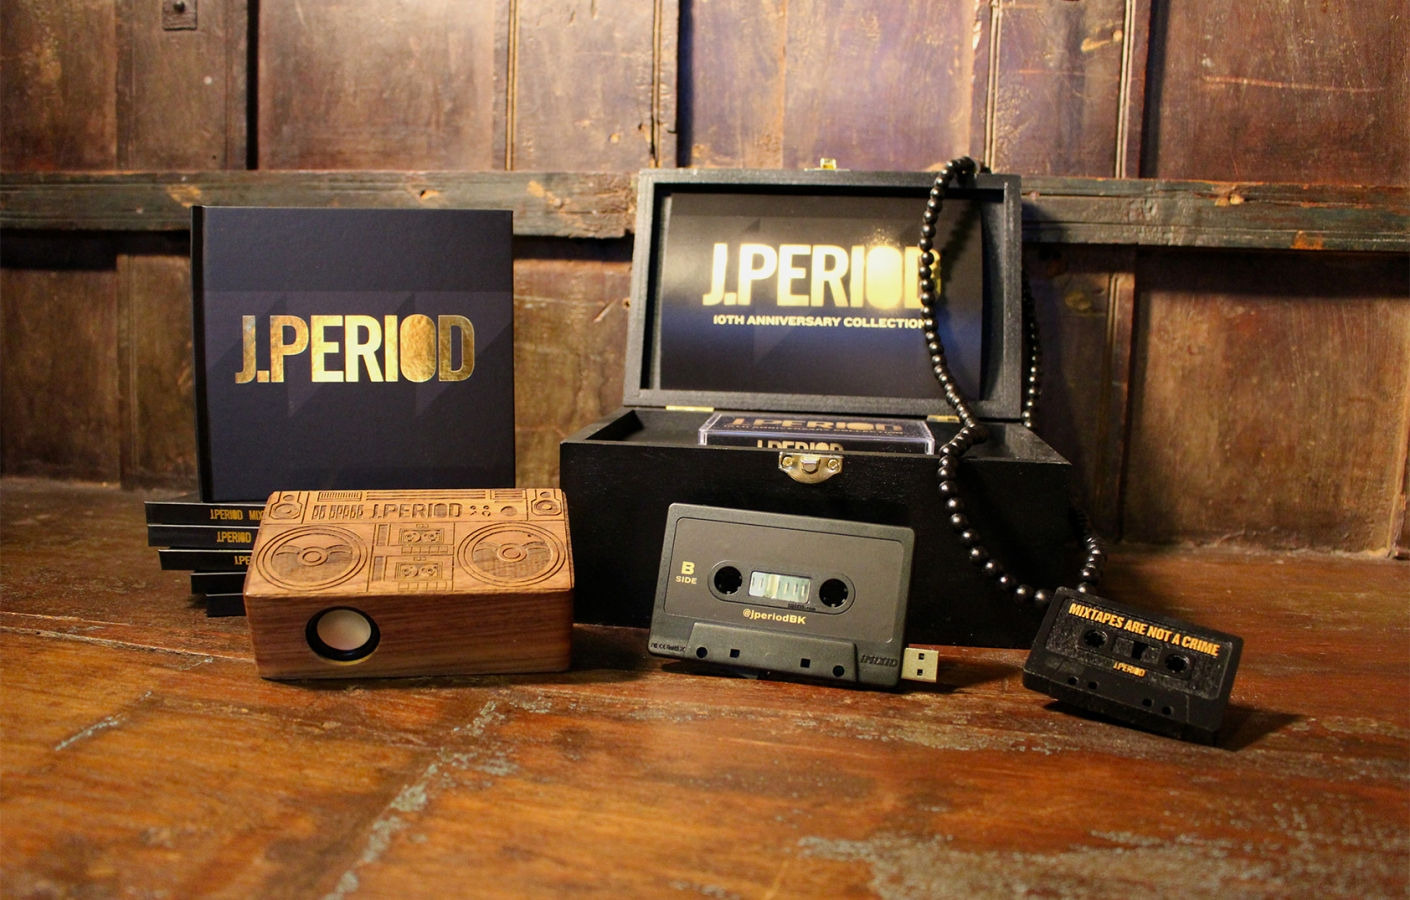 J.PERIOD LIMITED EDITION 10TH ANNIVERSARY COLLECTION